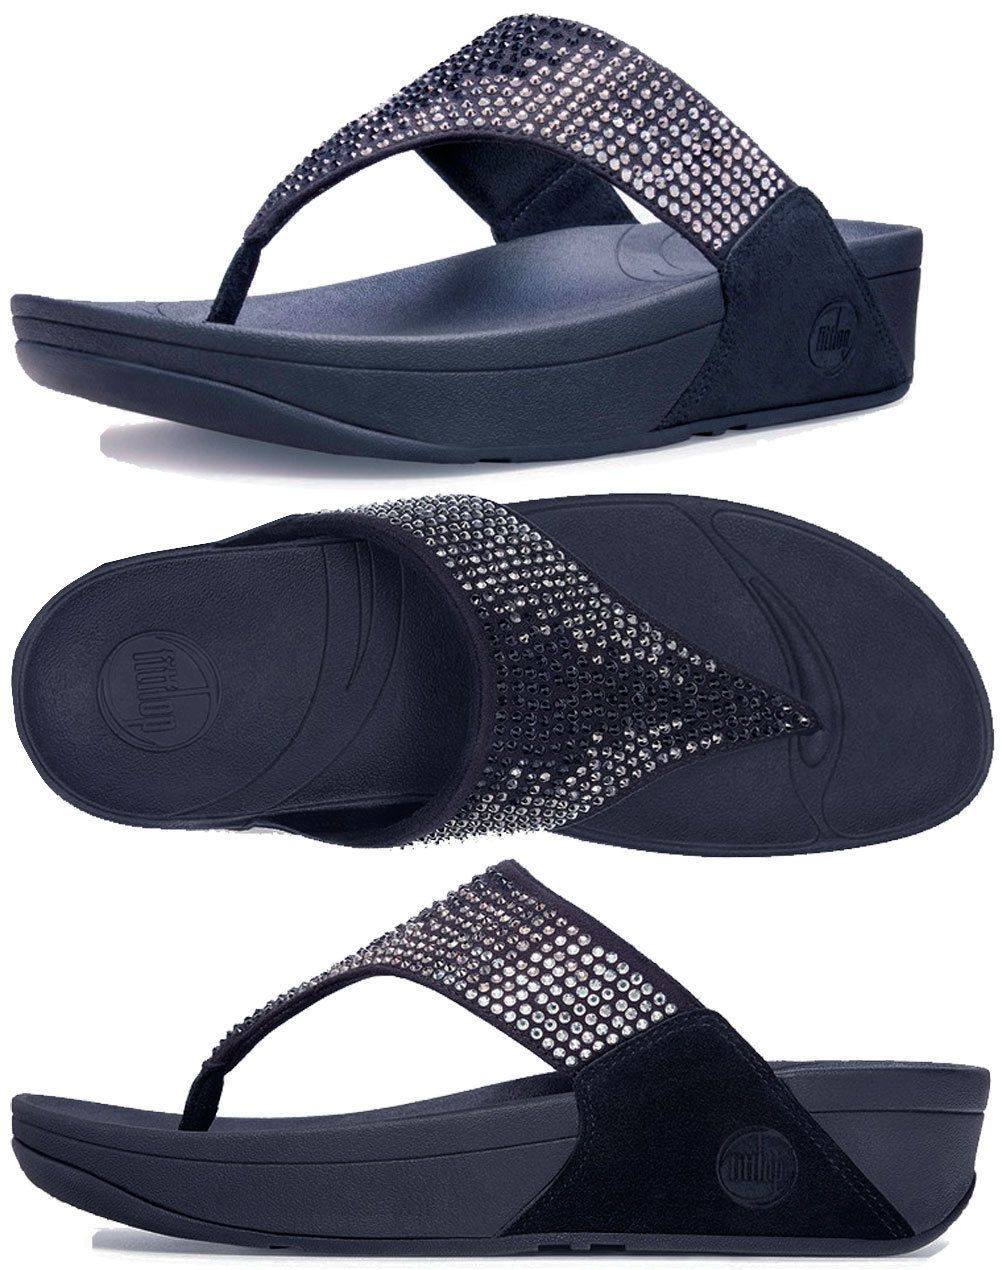 0f2373a1524d2 Fitflop Flare Supernavy Flip Flop Women S Sizes 5-11 36-42 !!!